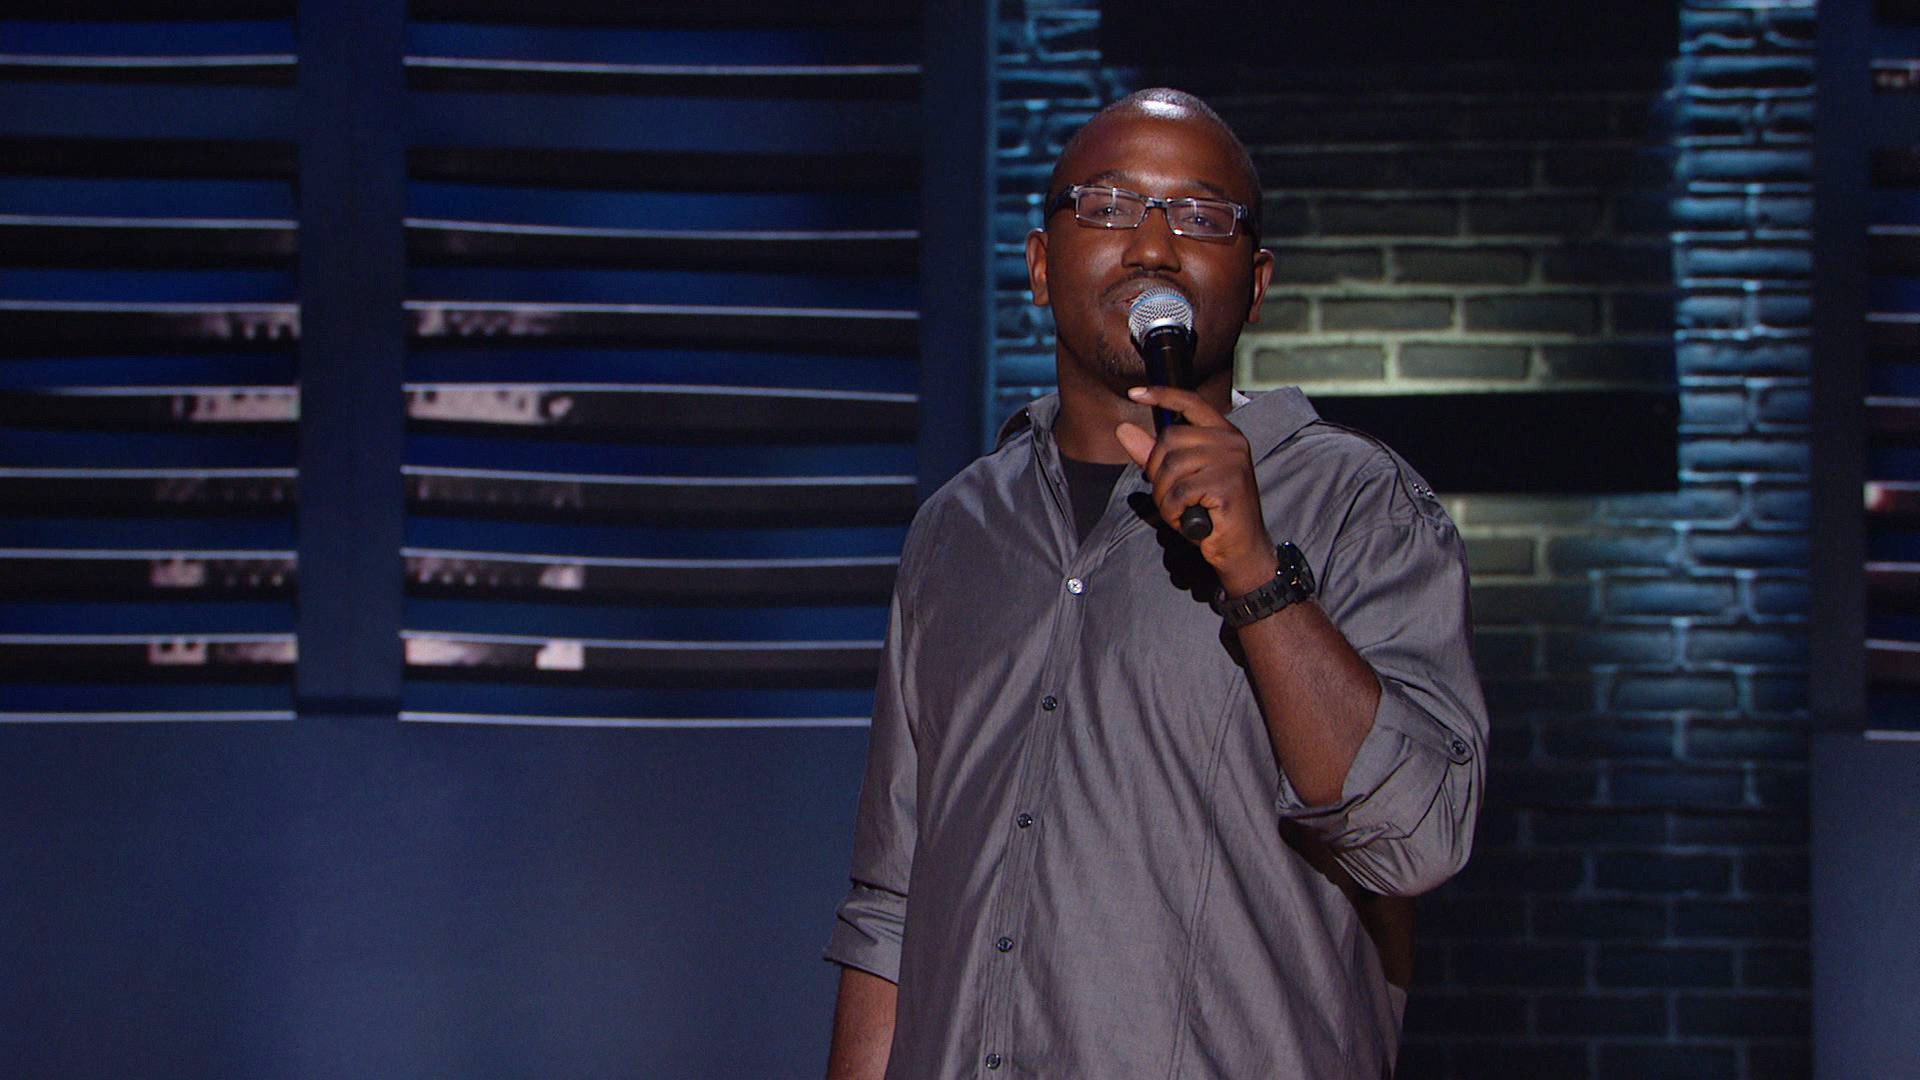 Hannibal Buress - Cool Guy